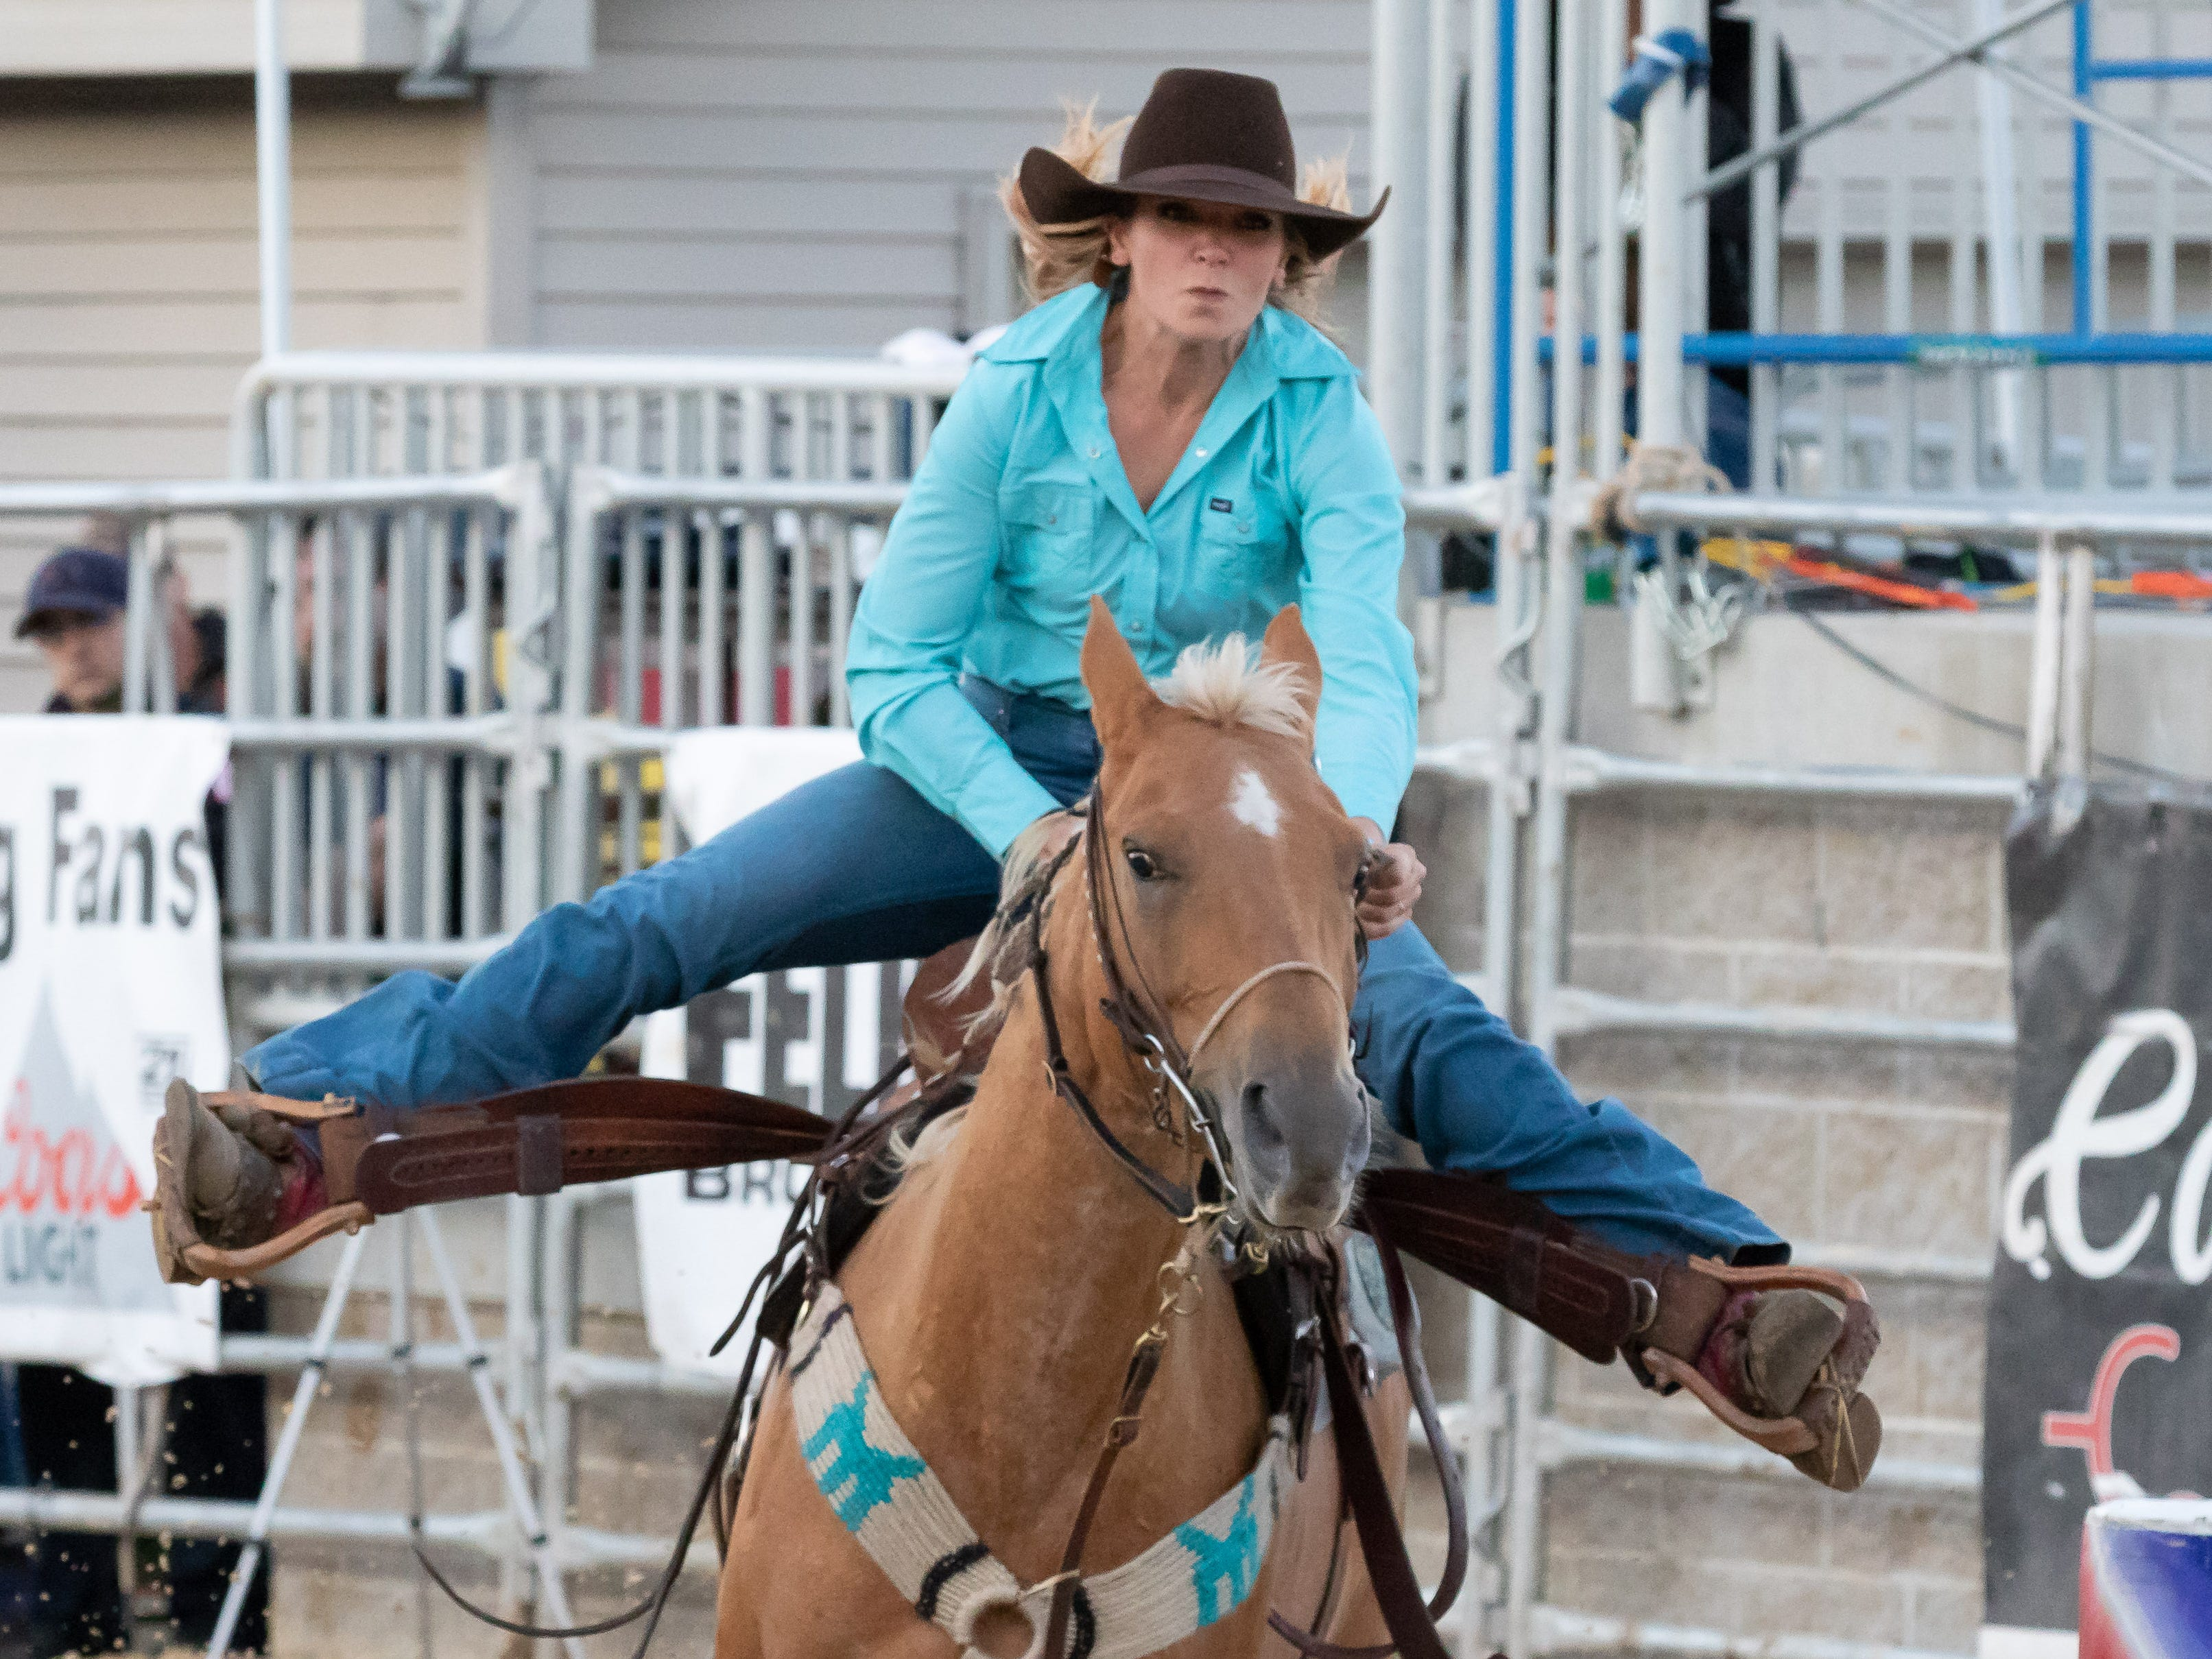 Riders from Wisconsin and Minnesota compete in the Central Barrel Racing Association Finals on Saturday, Sept. 22, 2018, at the Central Wisconsin State Fairgrounds in Marshfield.